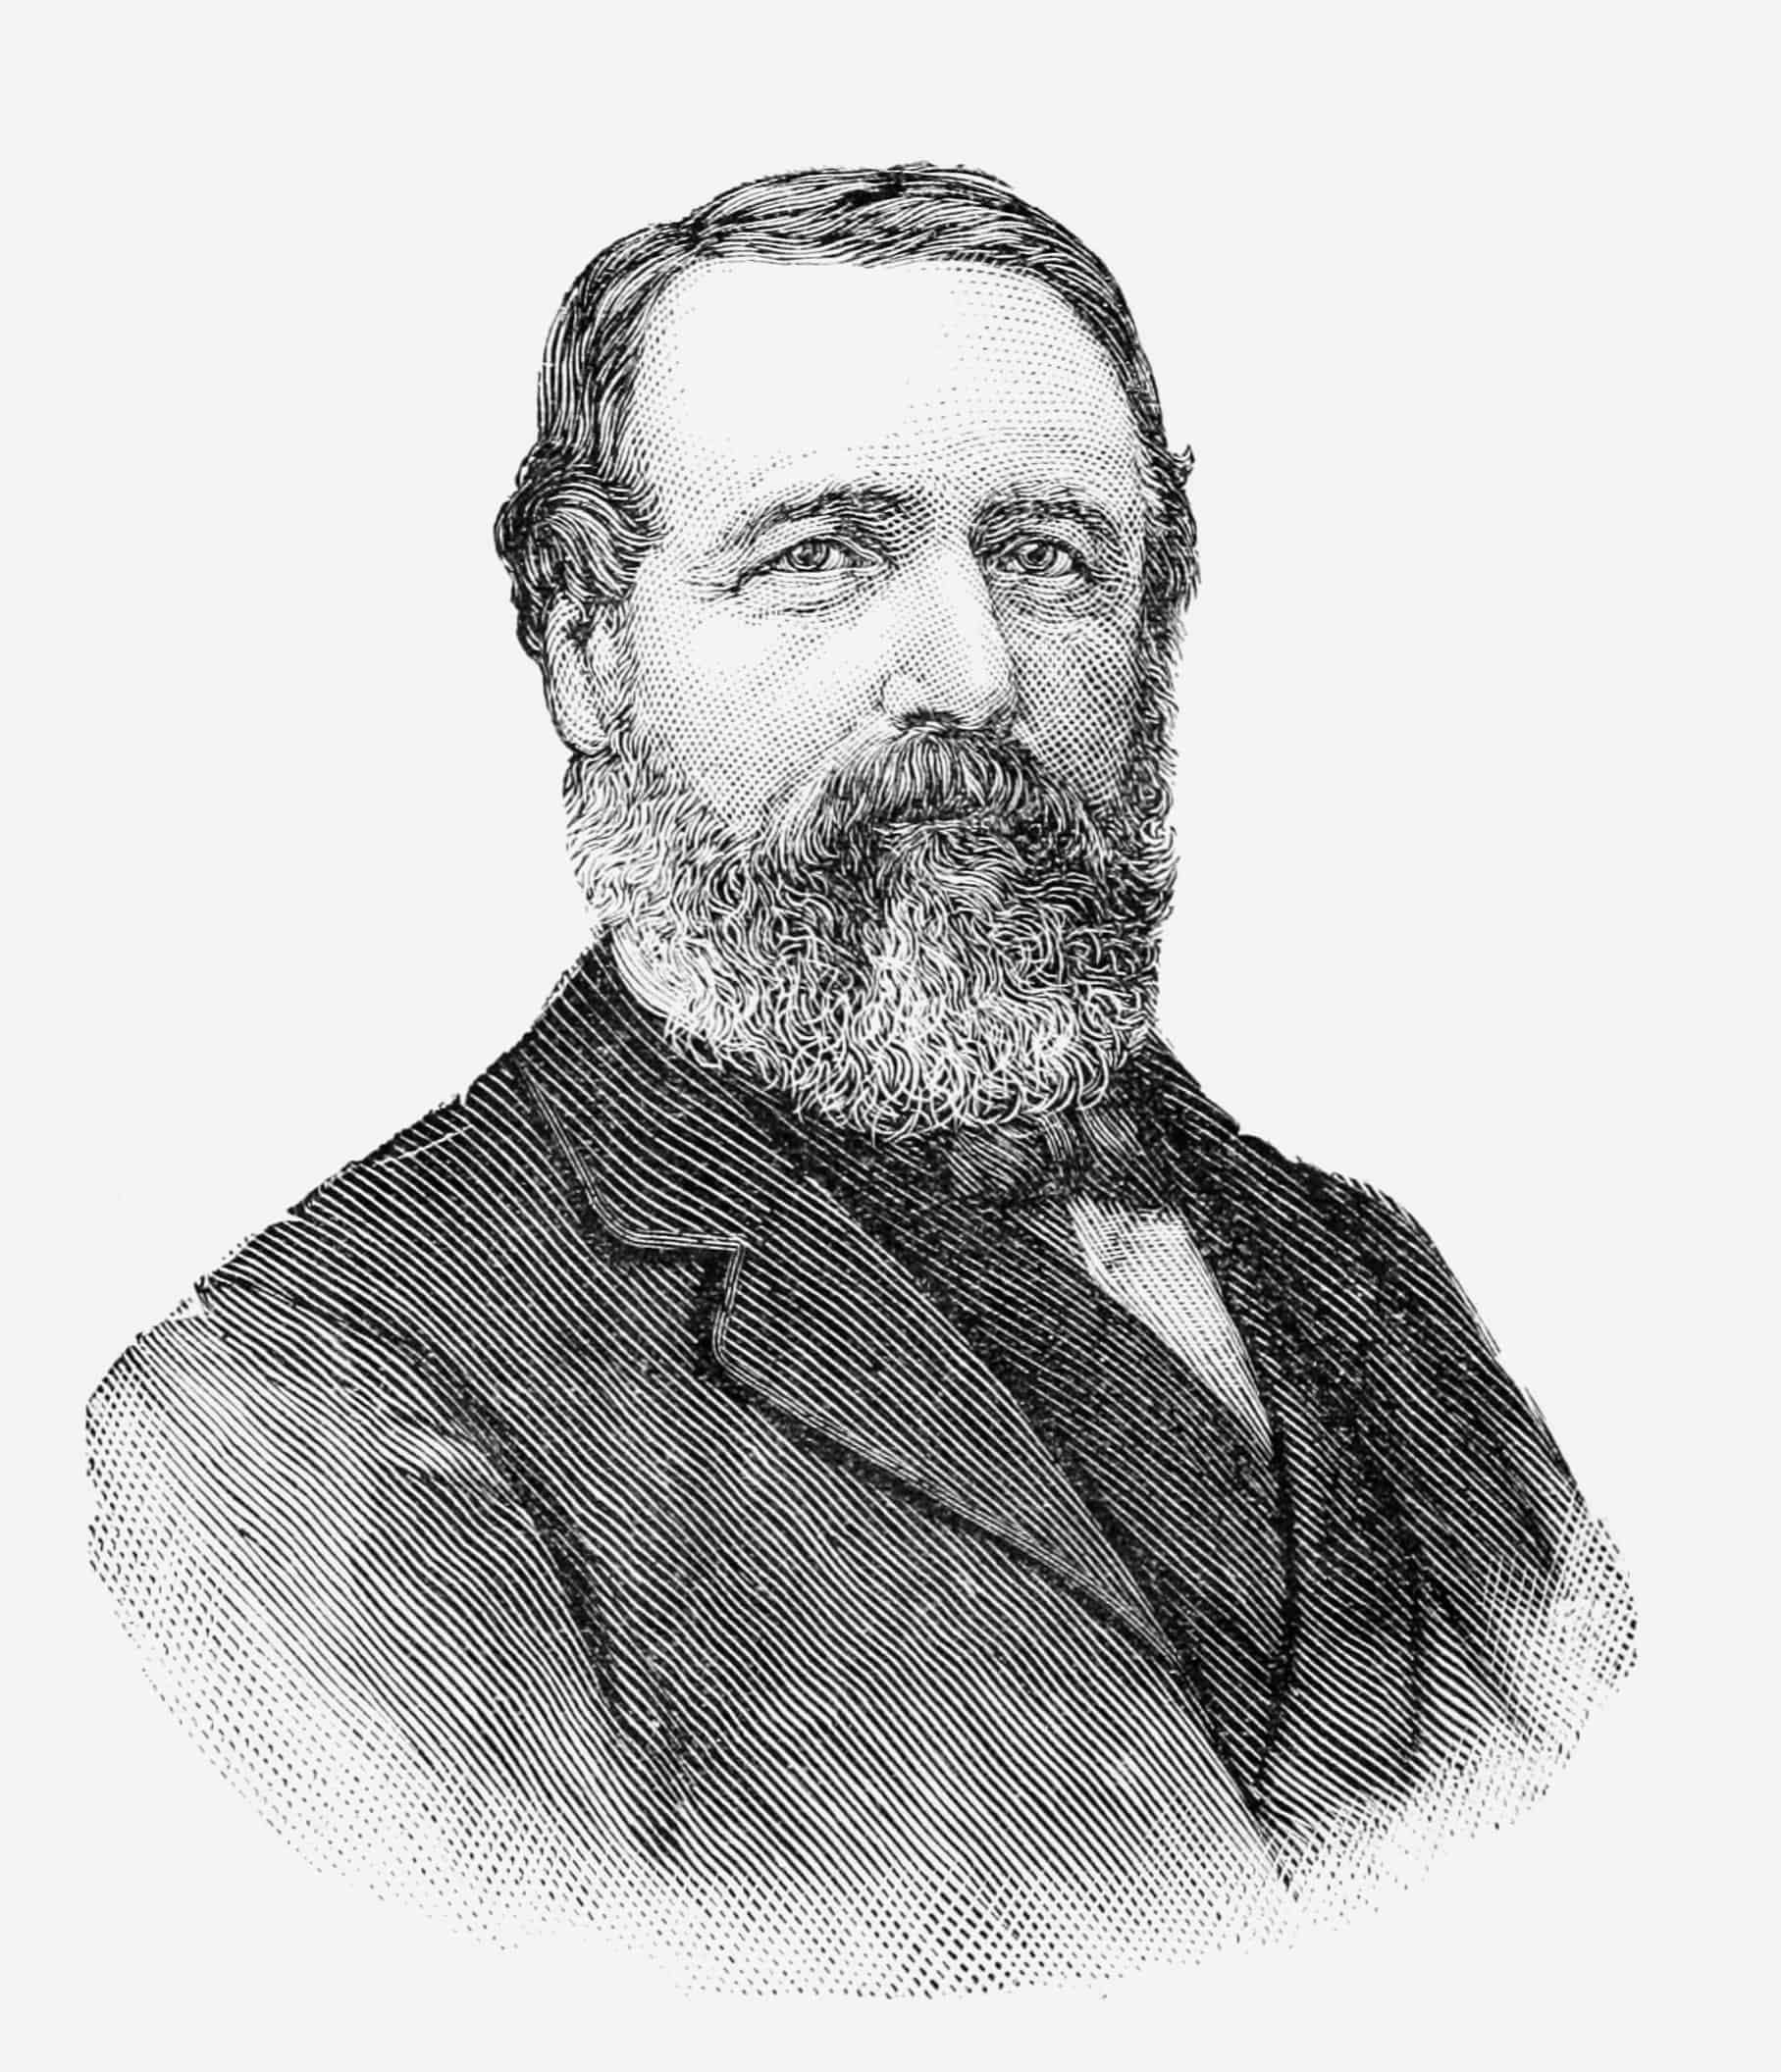 henry chadwick, the father of baseball